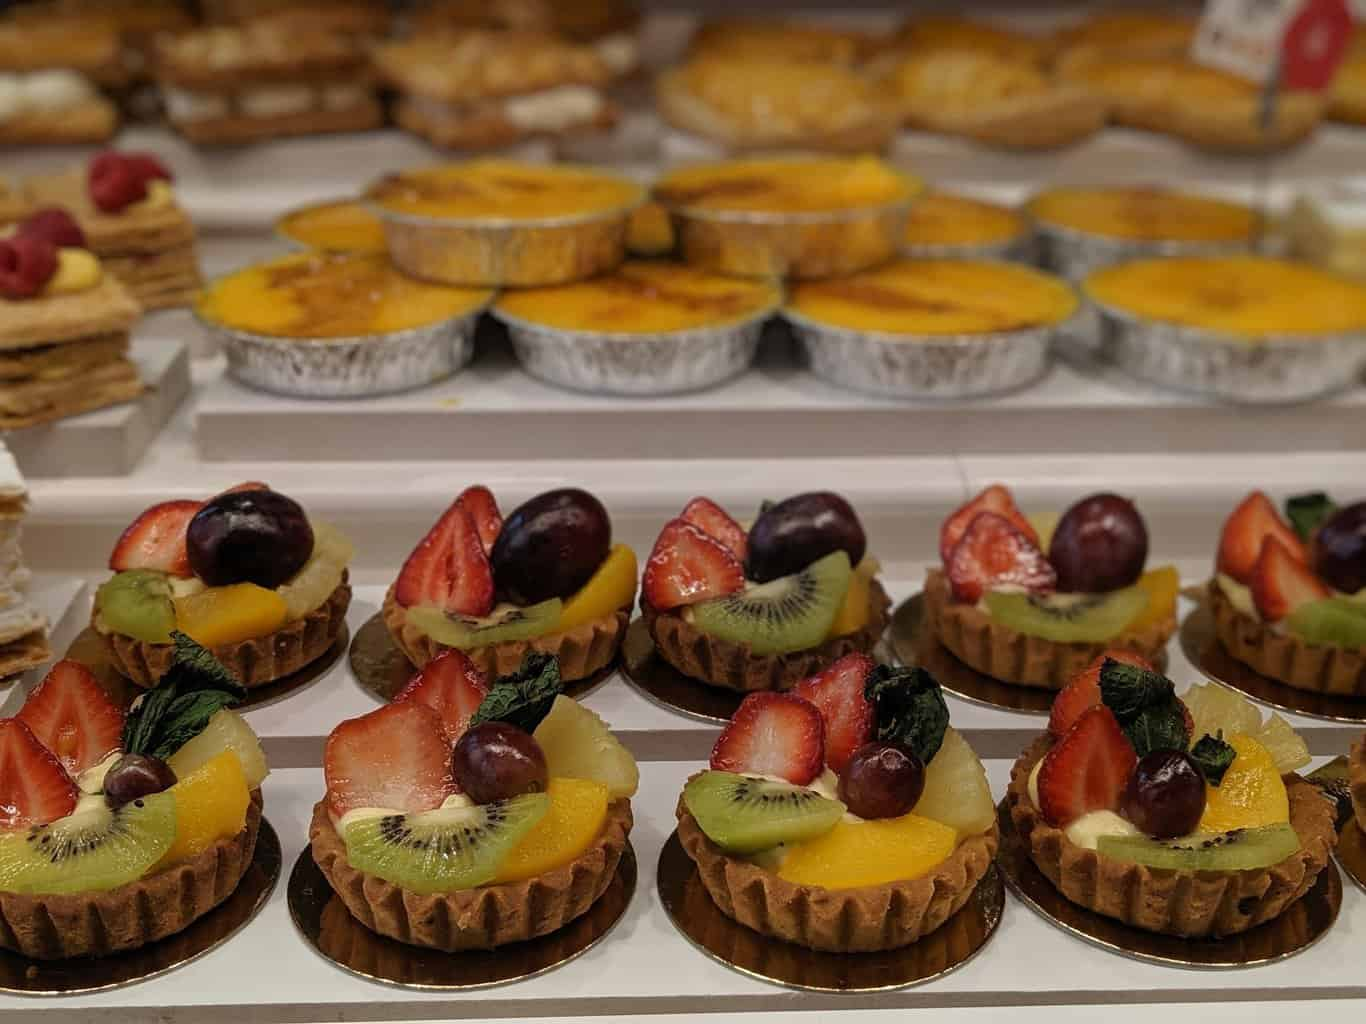 Cakes and tarts in madrid Spain